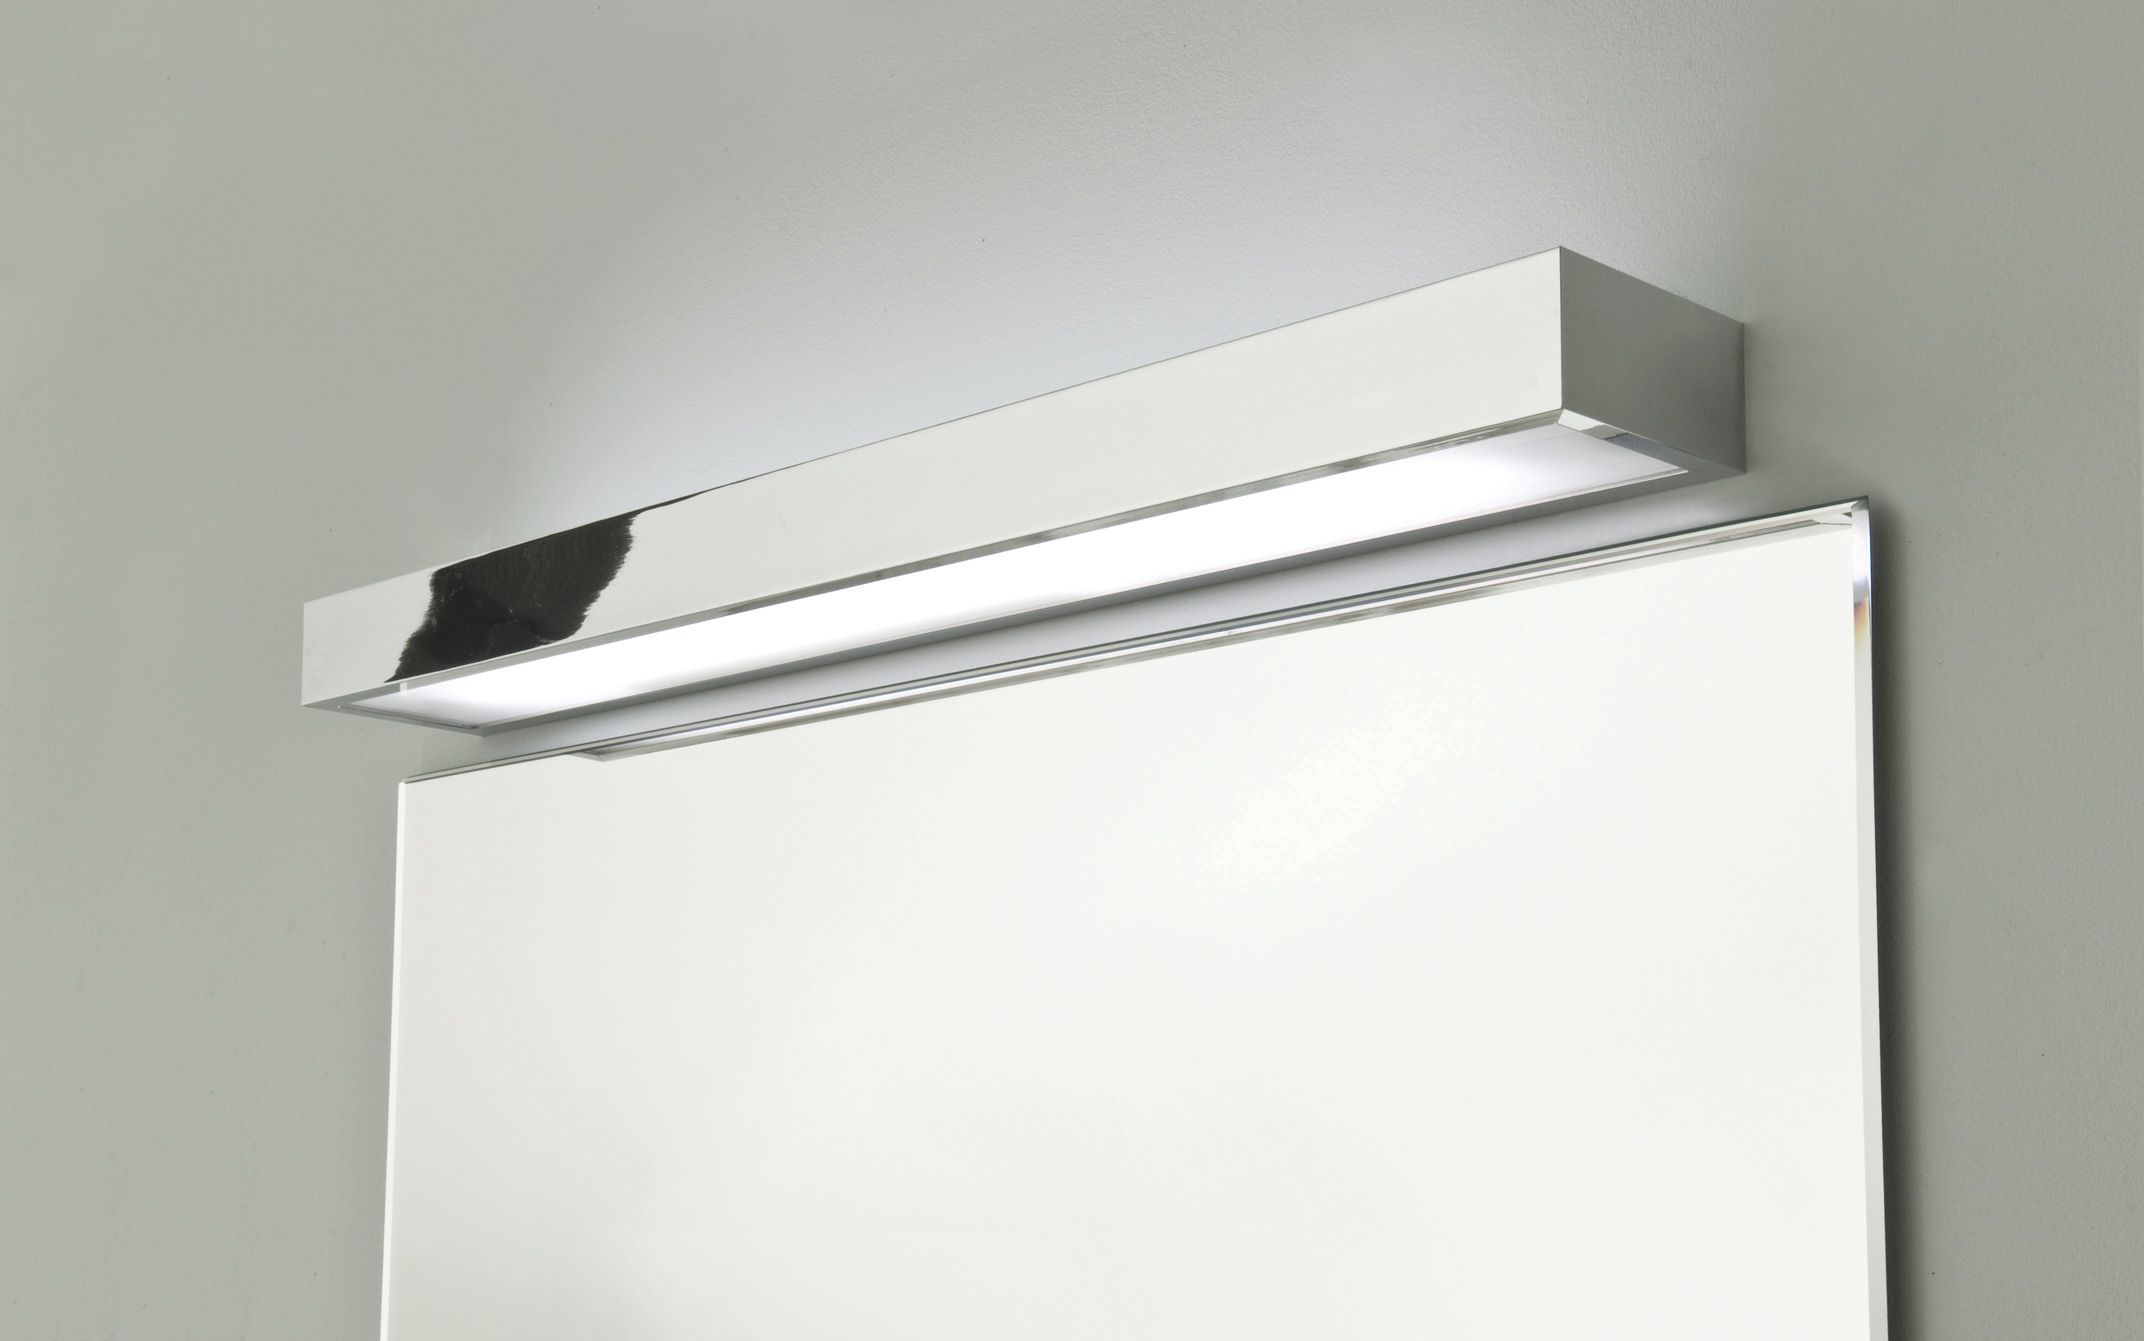 ASTRO TALLIN 600 0661 Bathroom wall light 1 x 24W HO T5 IP44 Polished chrome